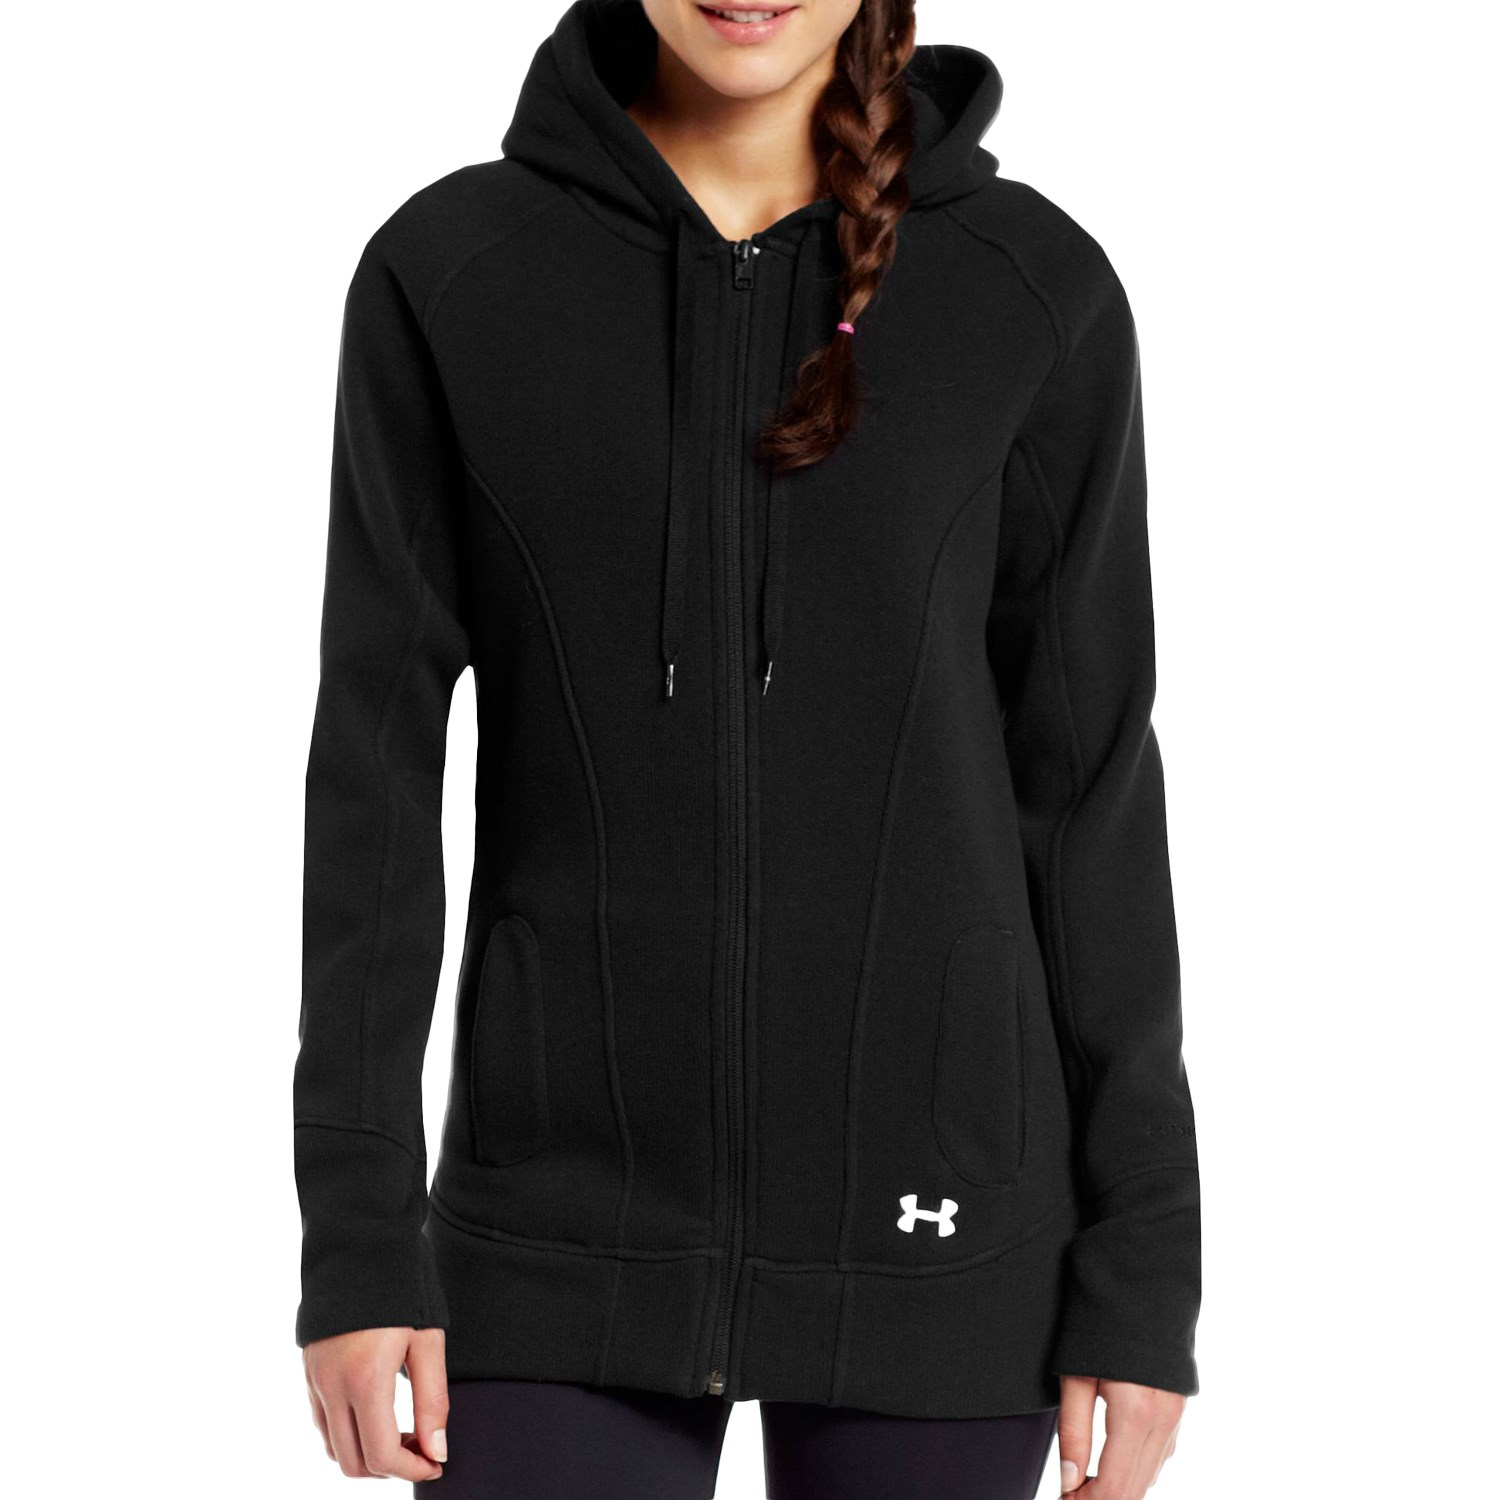 Buy cheap Online - under armour ladies hoodies,Fine - Shoes ...